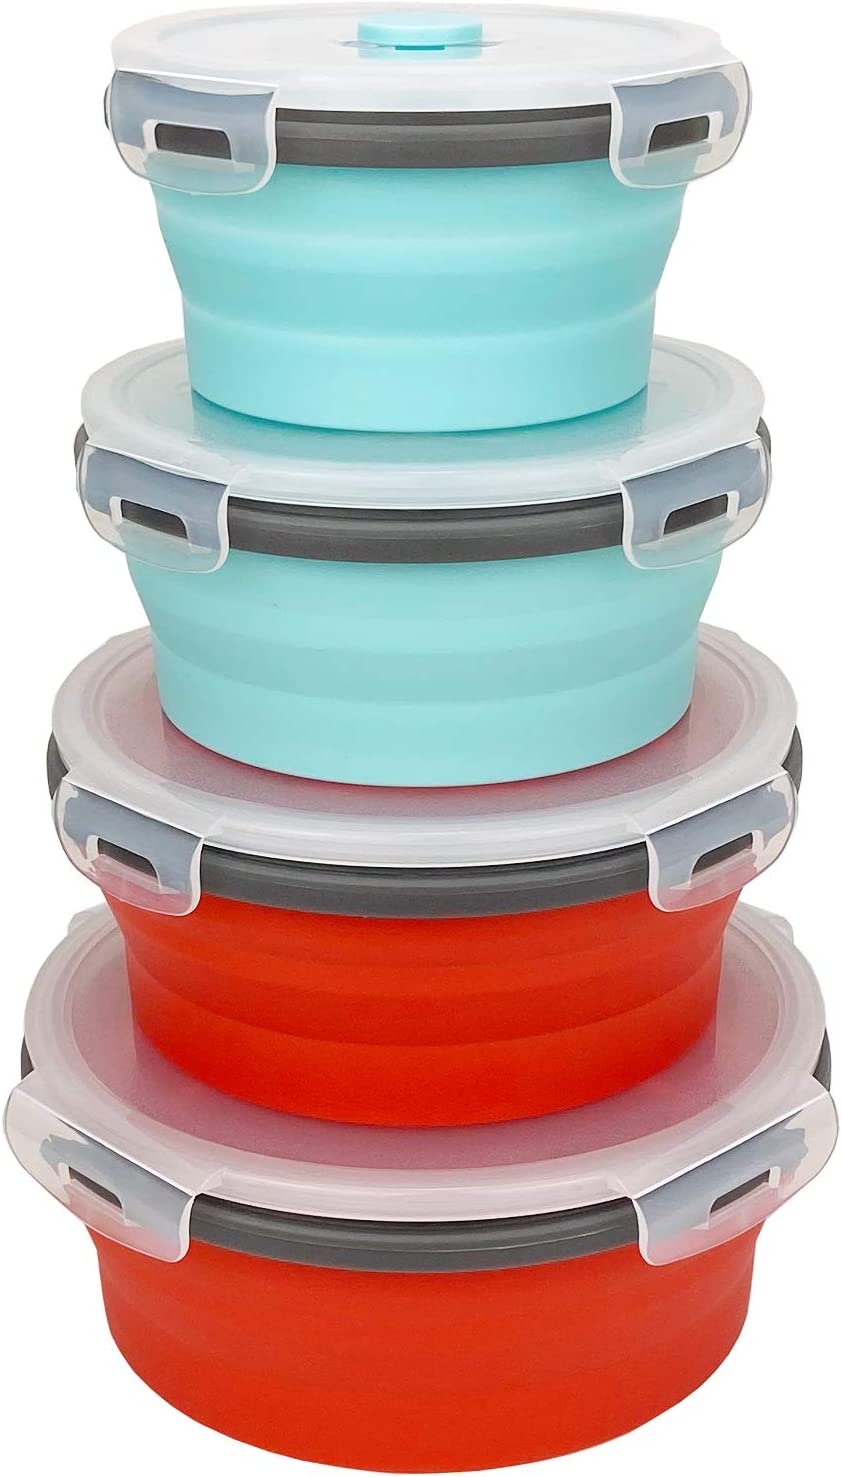 CCyanzi Round Silicone Food Storage Containers with Lids Collapsible Food Containers Collapsible Silicone Bowls Lunch Boxes, for Kitchen and Camping, Leakproof, Microwave and Freezer Safe